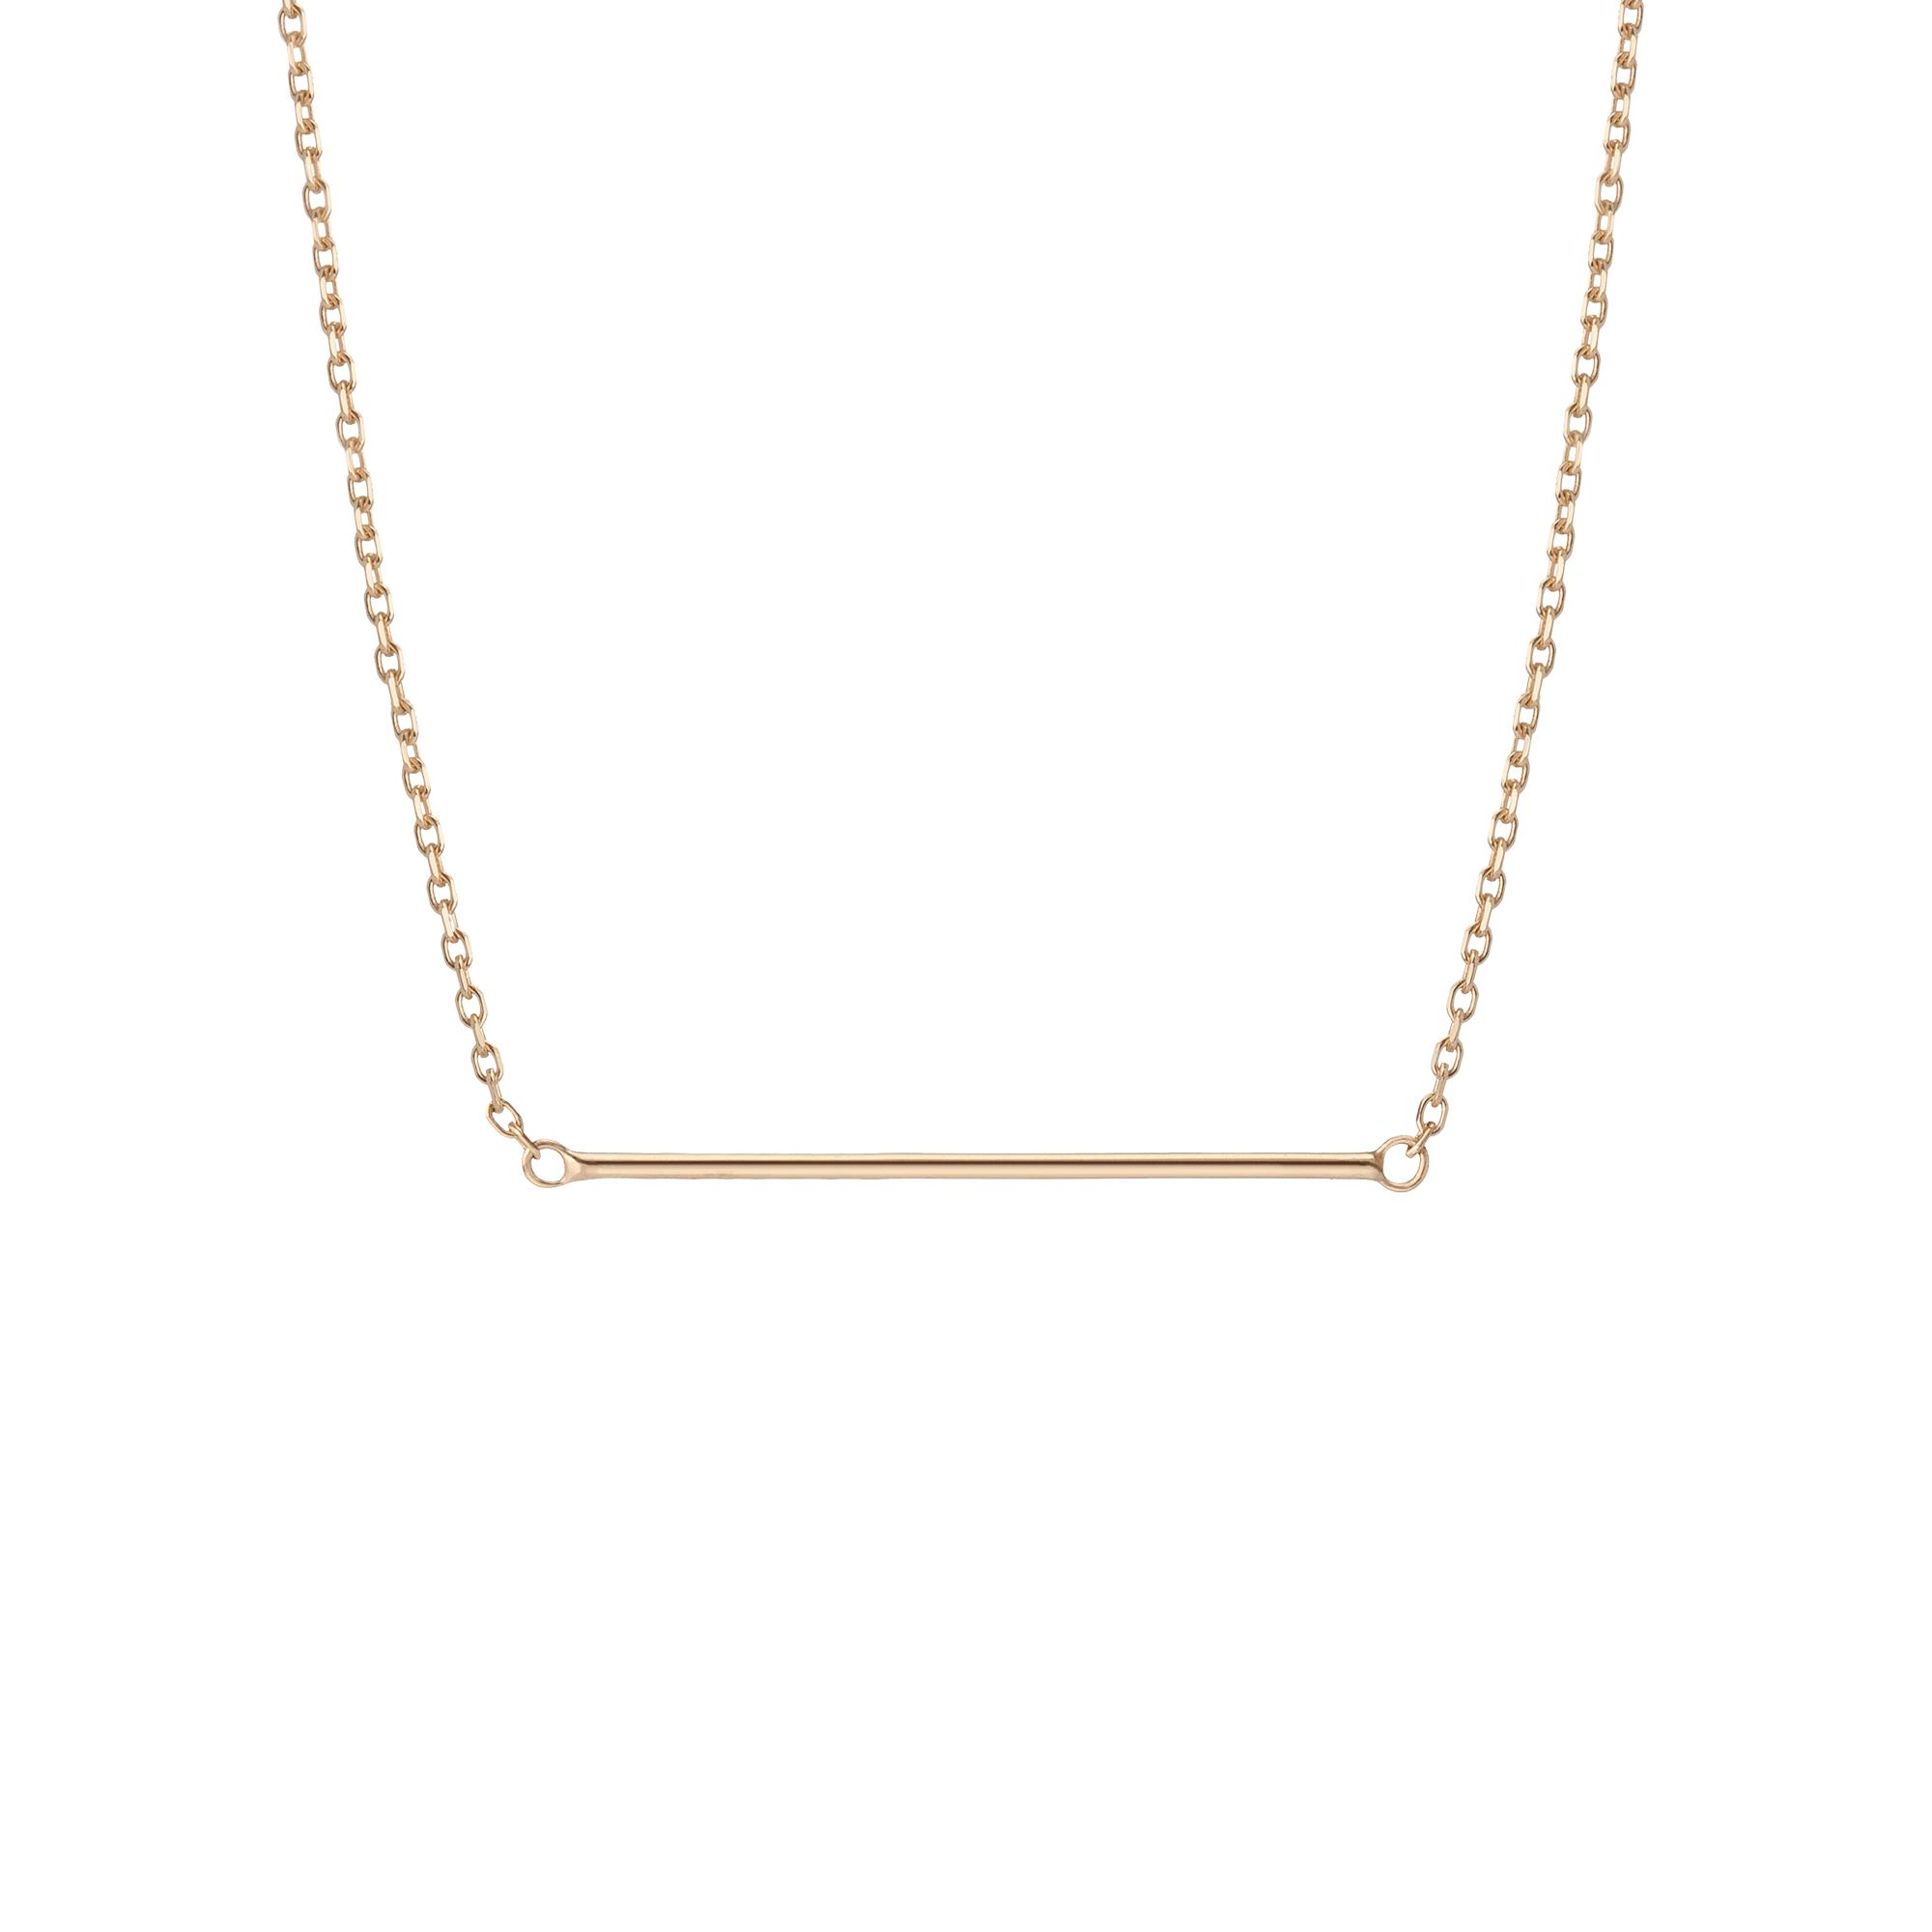 Lariat Bar Necklace in Yellow, Rose or White Gold.